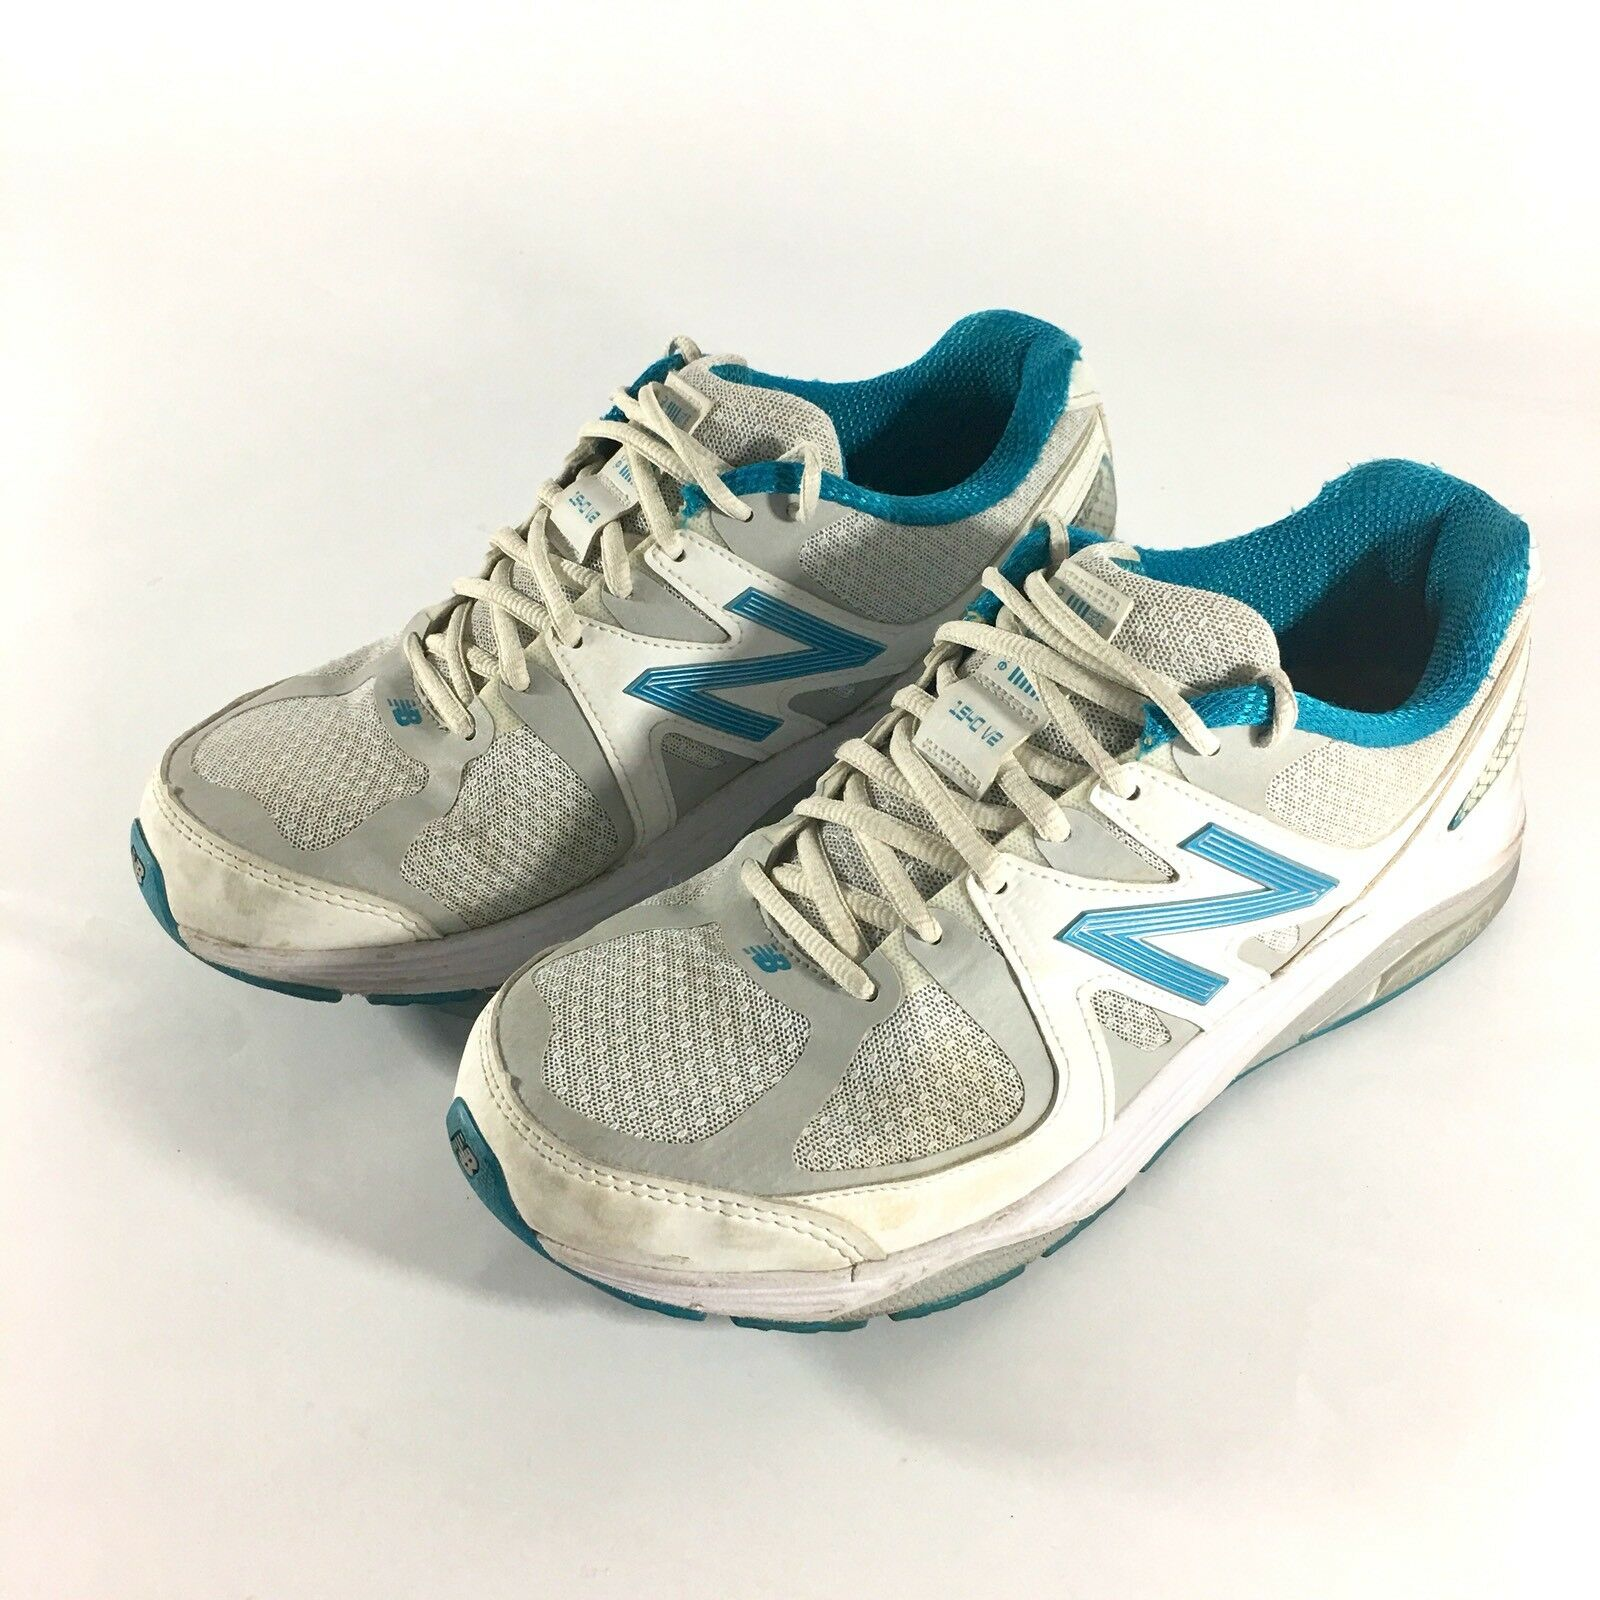 New Balance Womens Size 8.5 White 1540 V2 Running shoes Sneakers